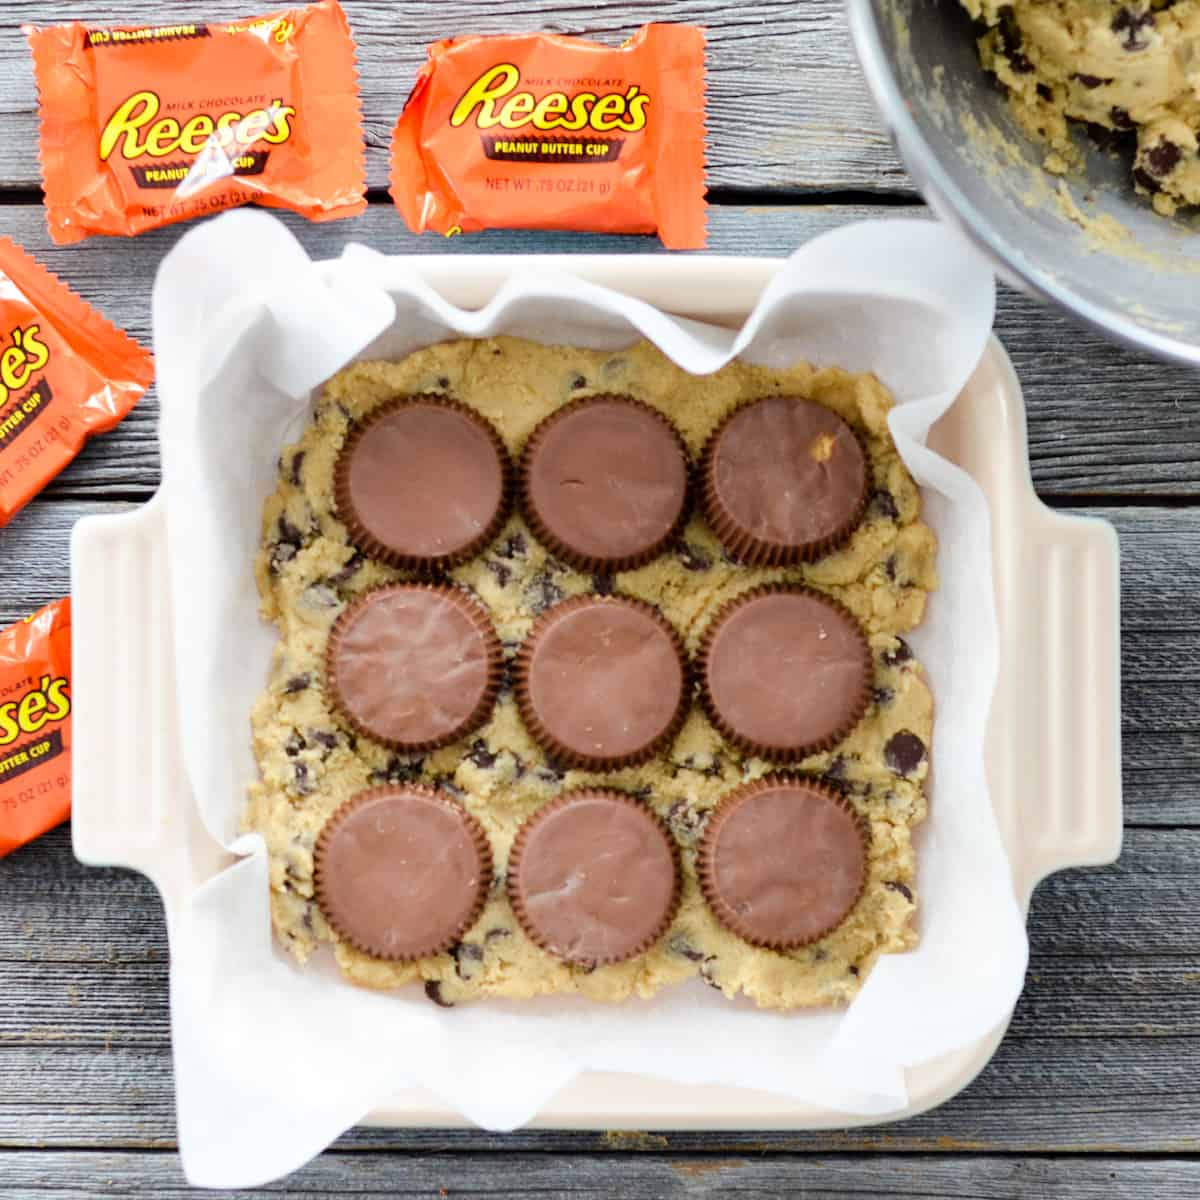 Overhead view of a baking dish with Candy Cookie Bars dough with three rows of three Reese's cups on top.